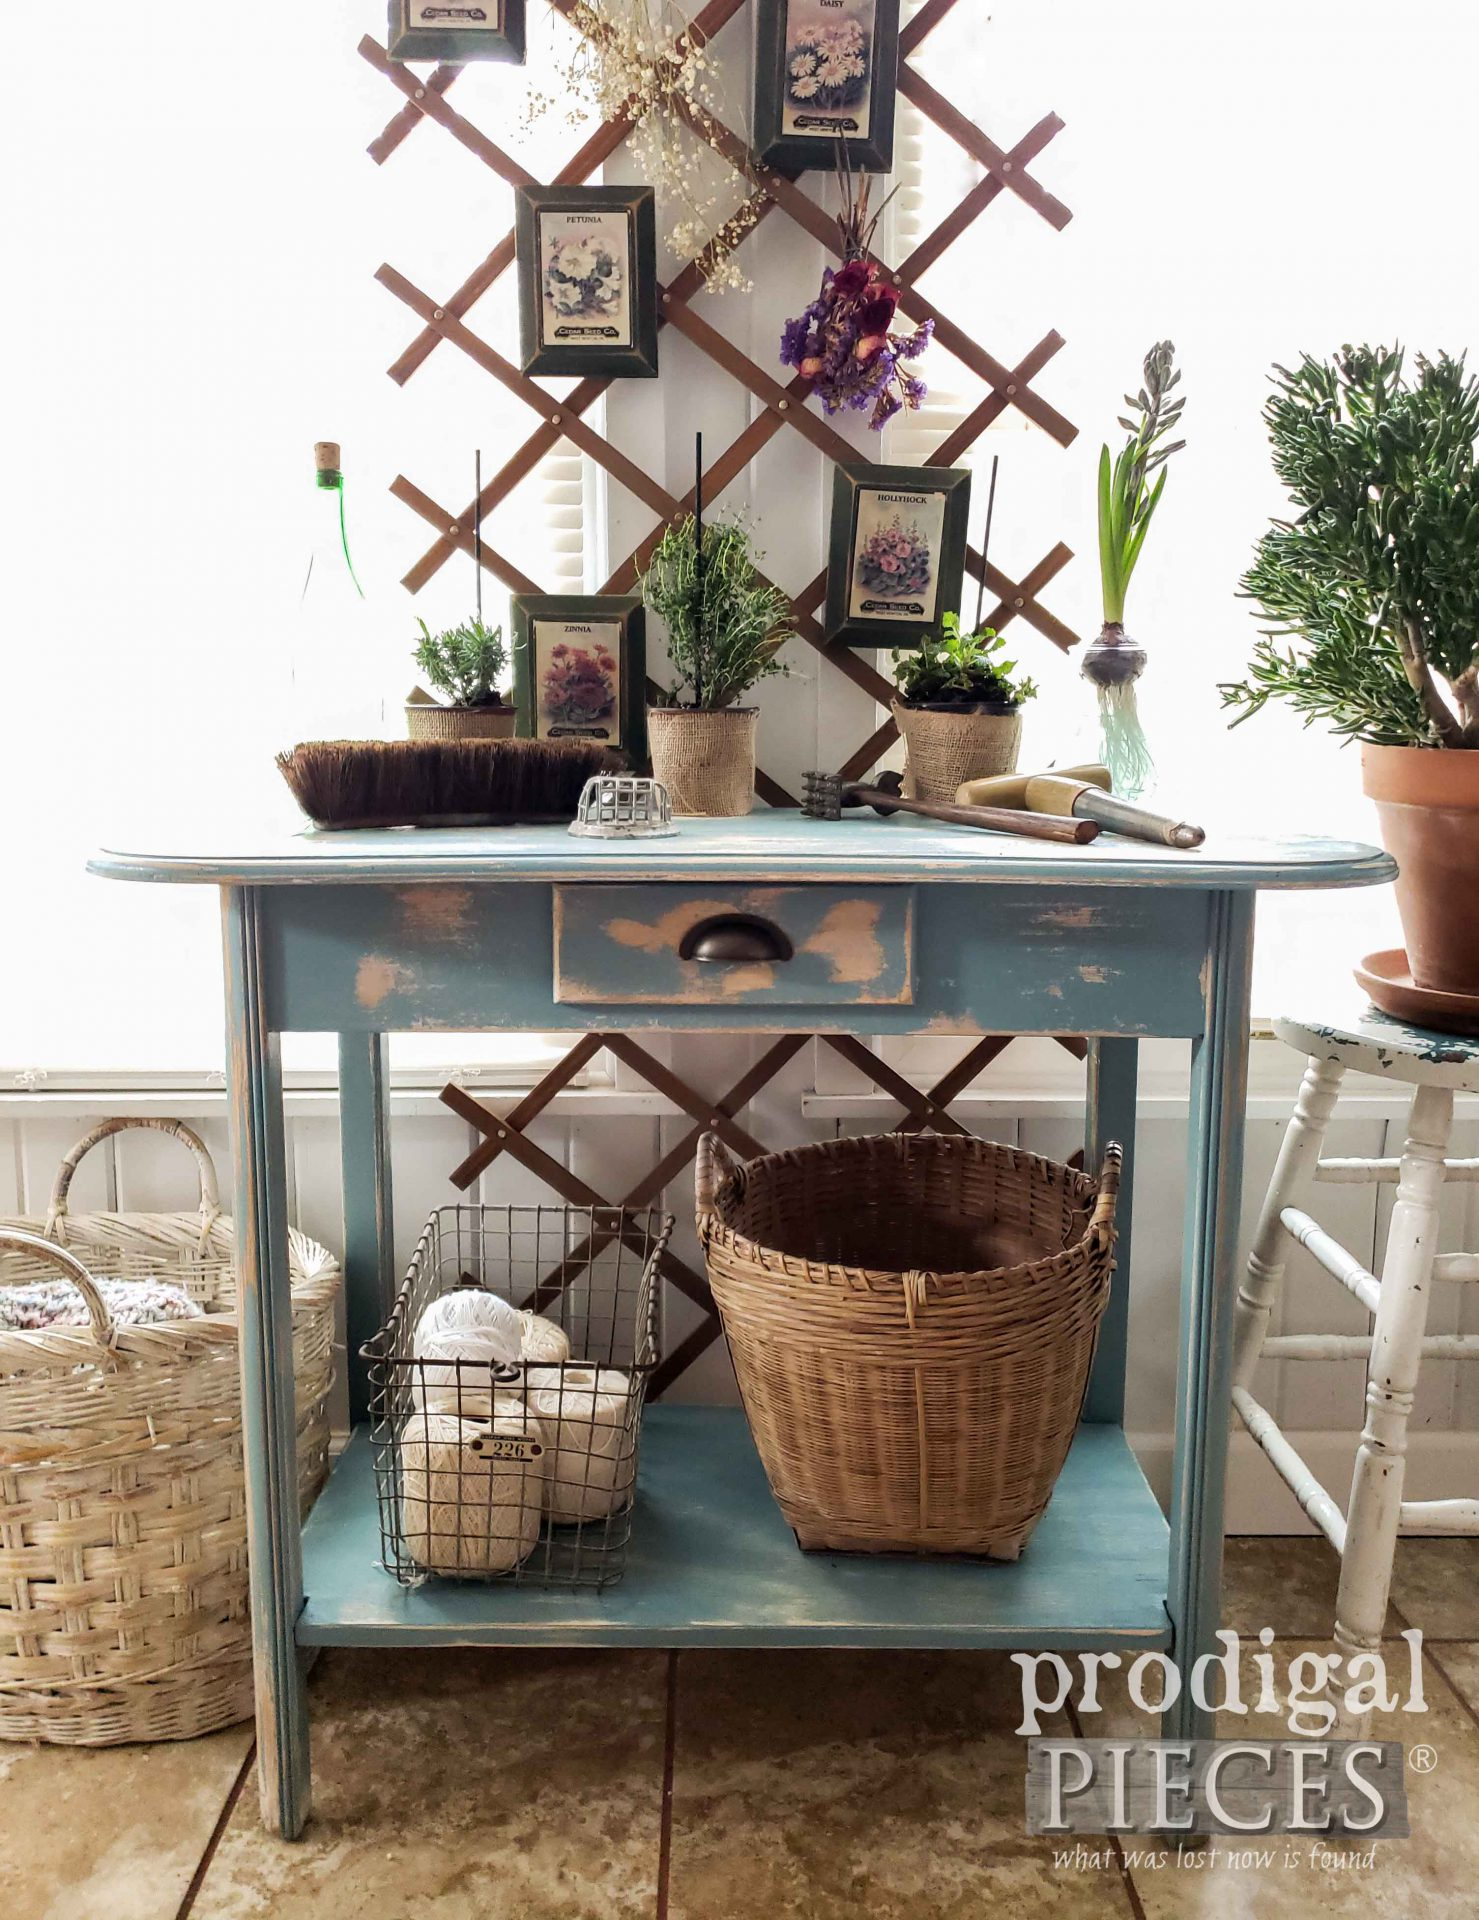 Cottage Style Blue Table Made from Repurposed Desk | DIY detail at Prodigal Pieces | prodigalpieces.com #prodigalpieces #home #furniture #farmhouse #homedecor